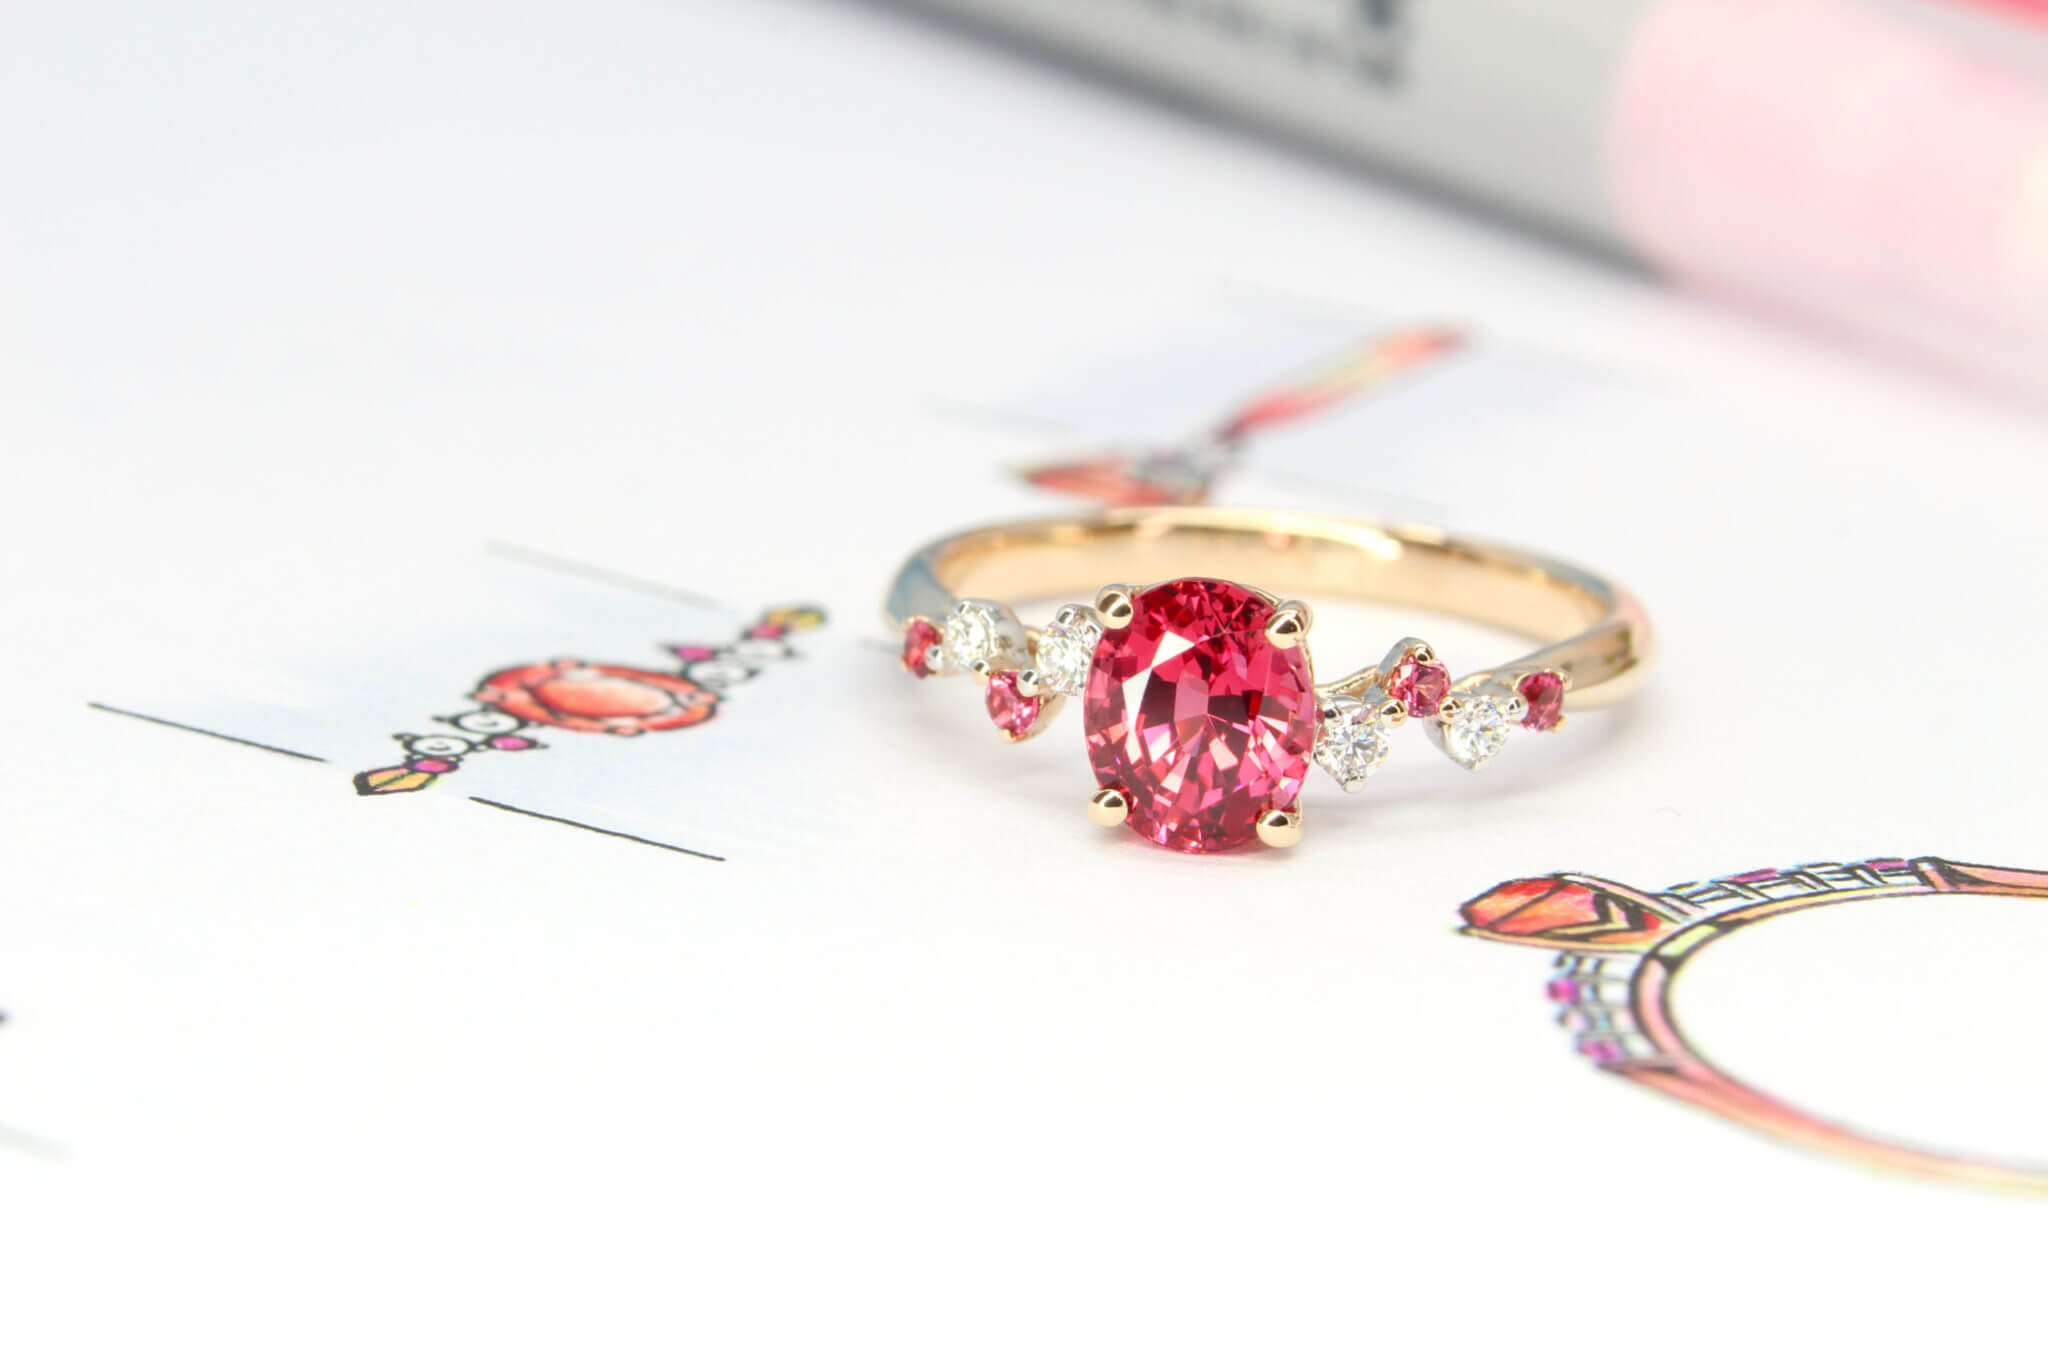 Customised Jewellery Pinkish Red Spinel Gem designed with round brilliant diamond and similar pinkish red spinel setting customised to the proposal ring - Customised Proposal Ring with vivid pinkish red spinel gemstone and diamonds adds dazzle to the overall design | Local Singapore Jeweller in customised proposal ring and wedding rings.